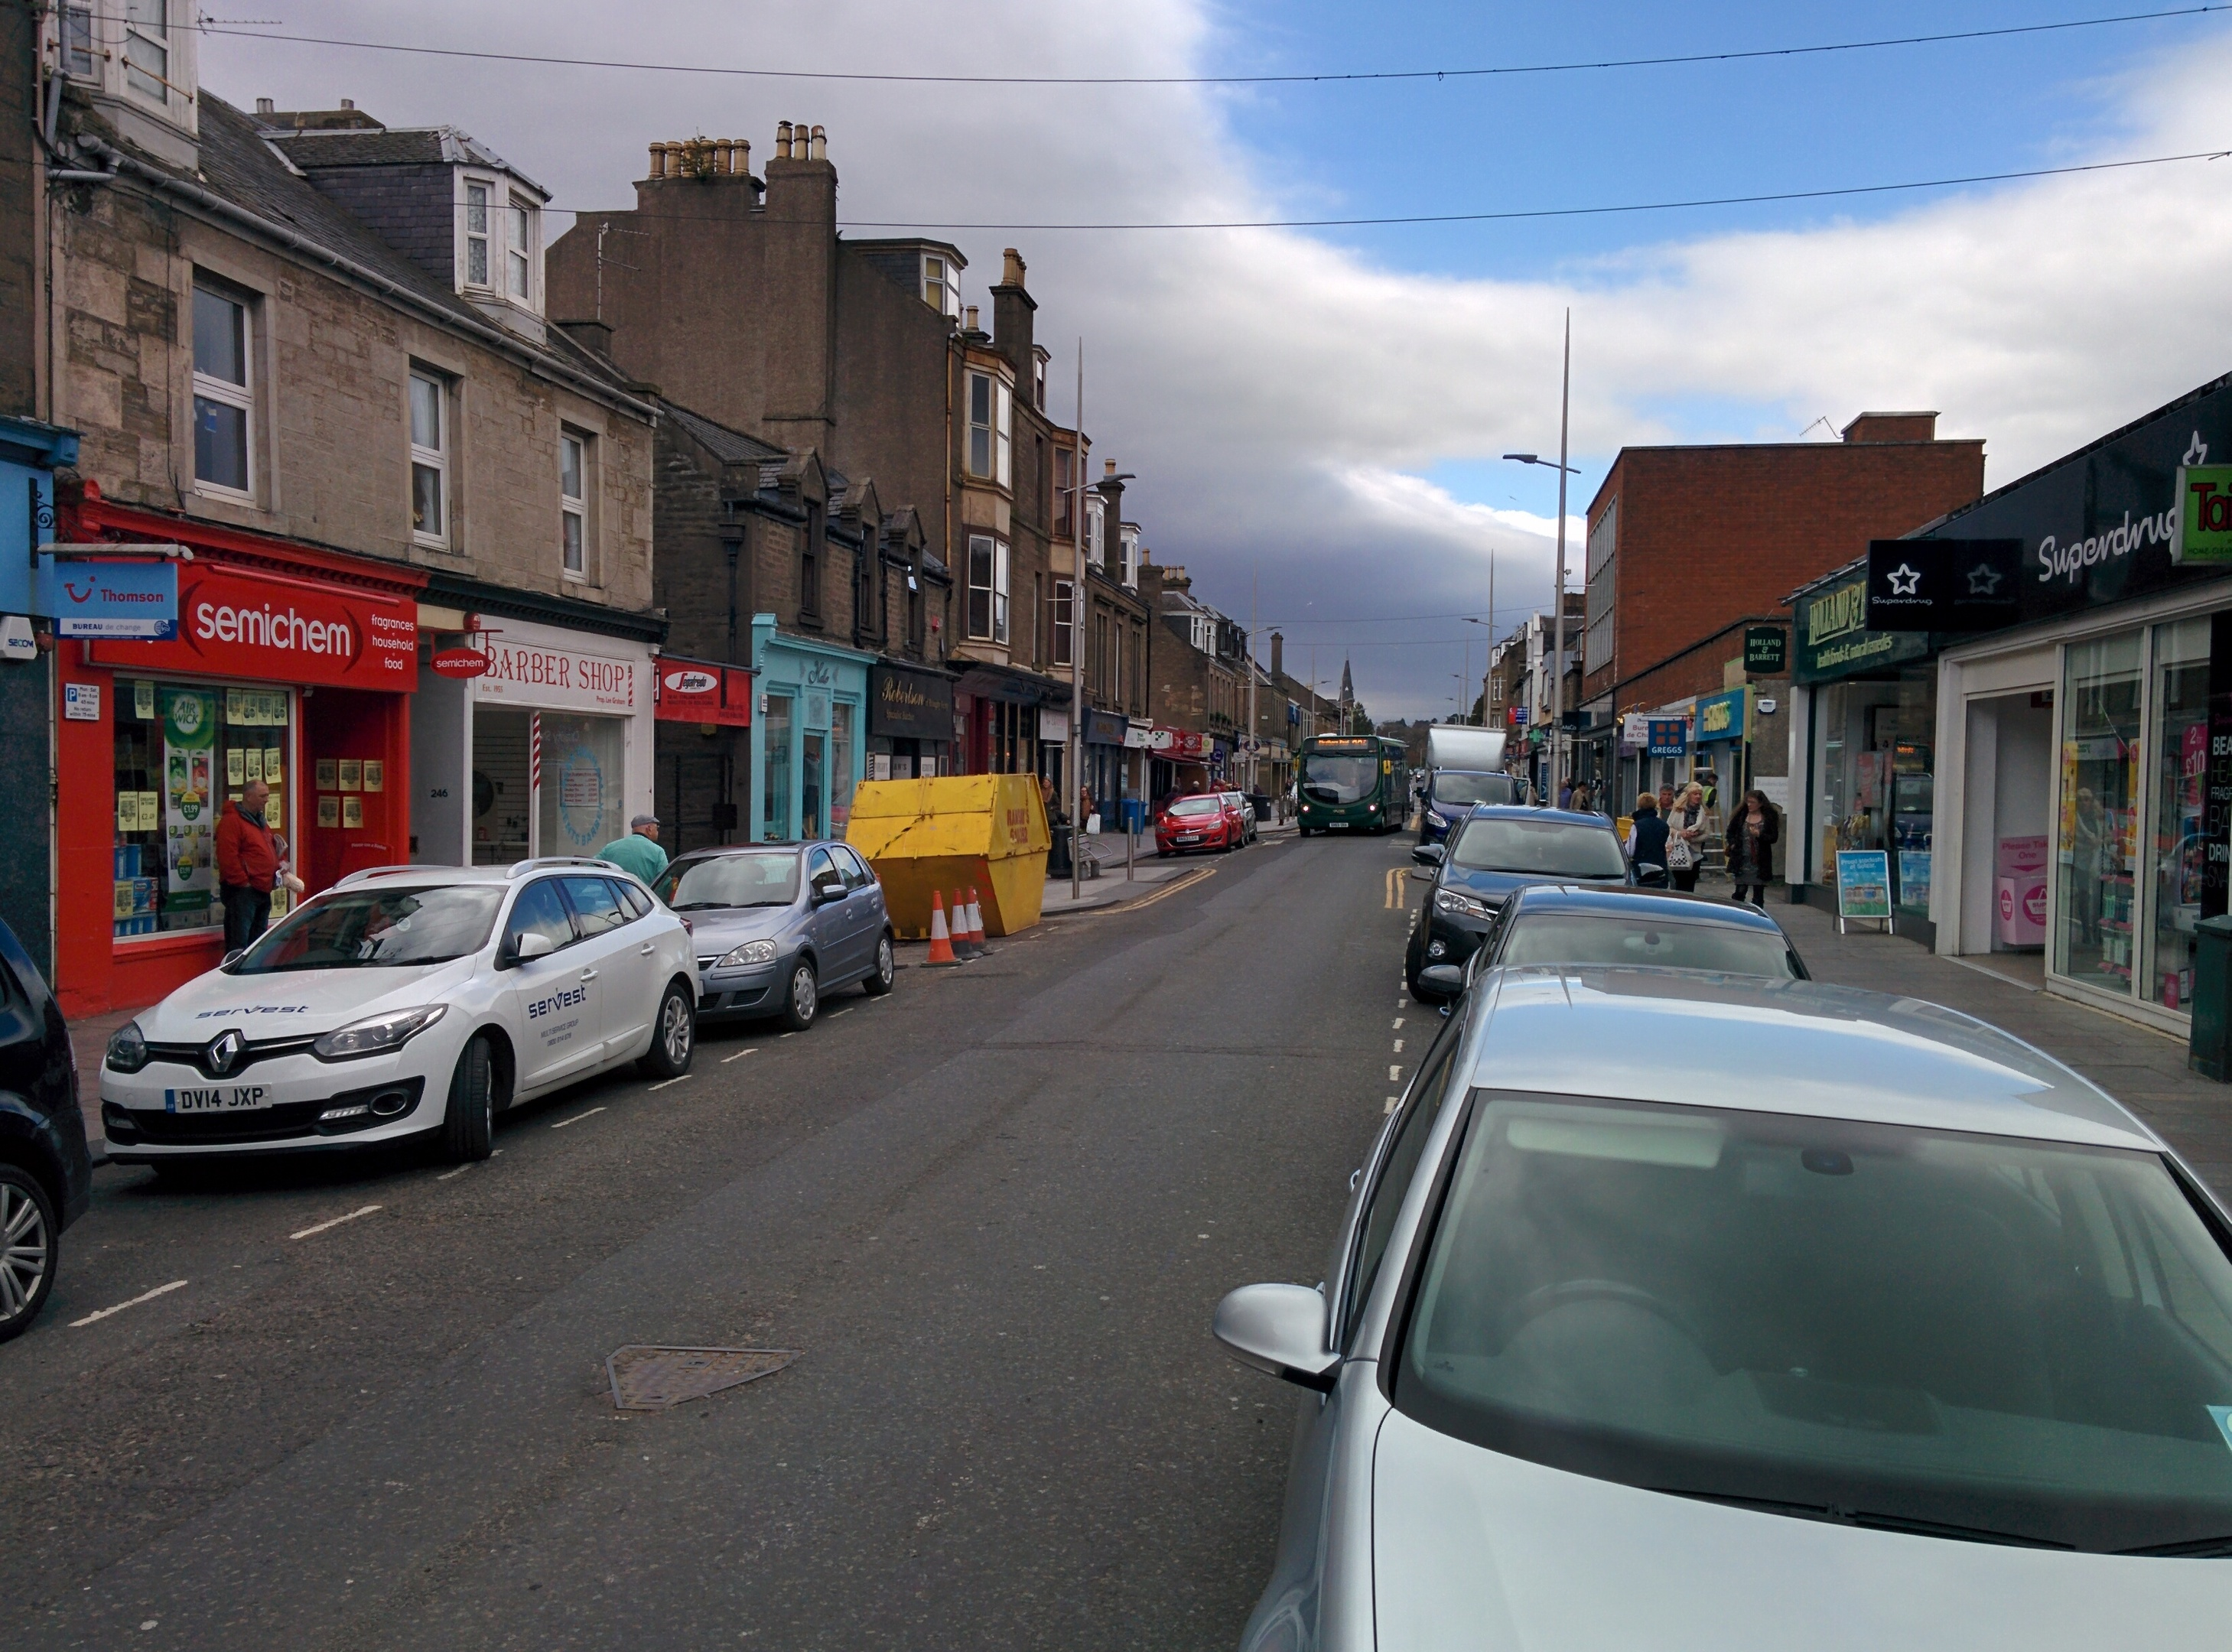 A quieter shopping scene in Brook Street, Broughty Ferry.